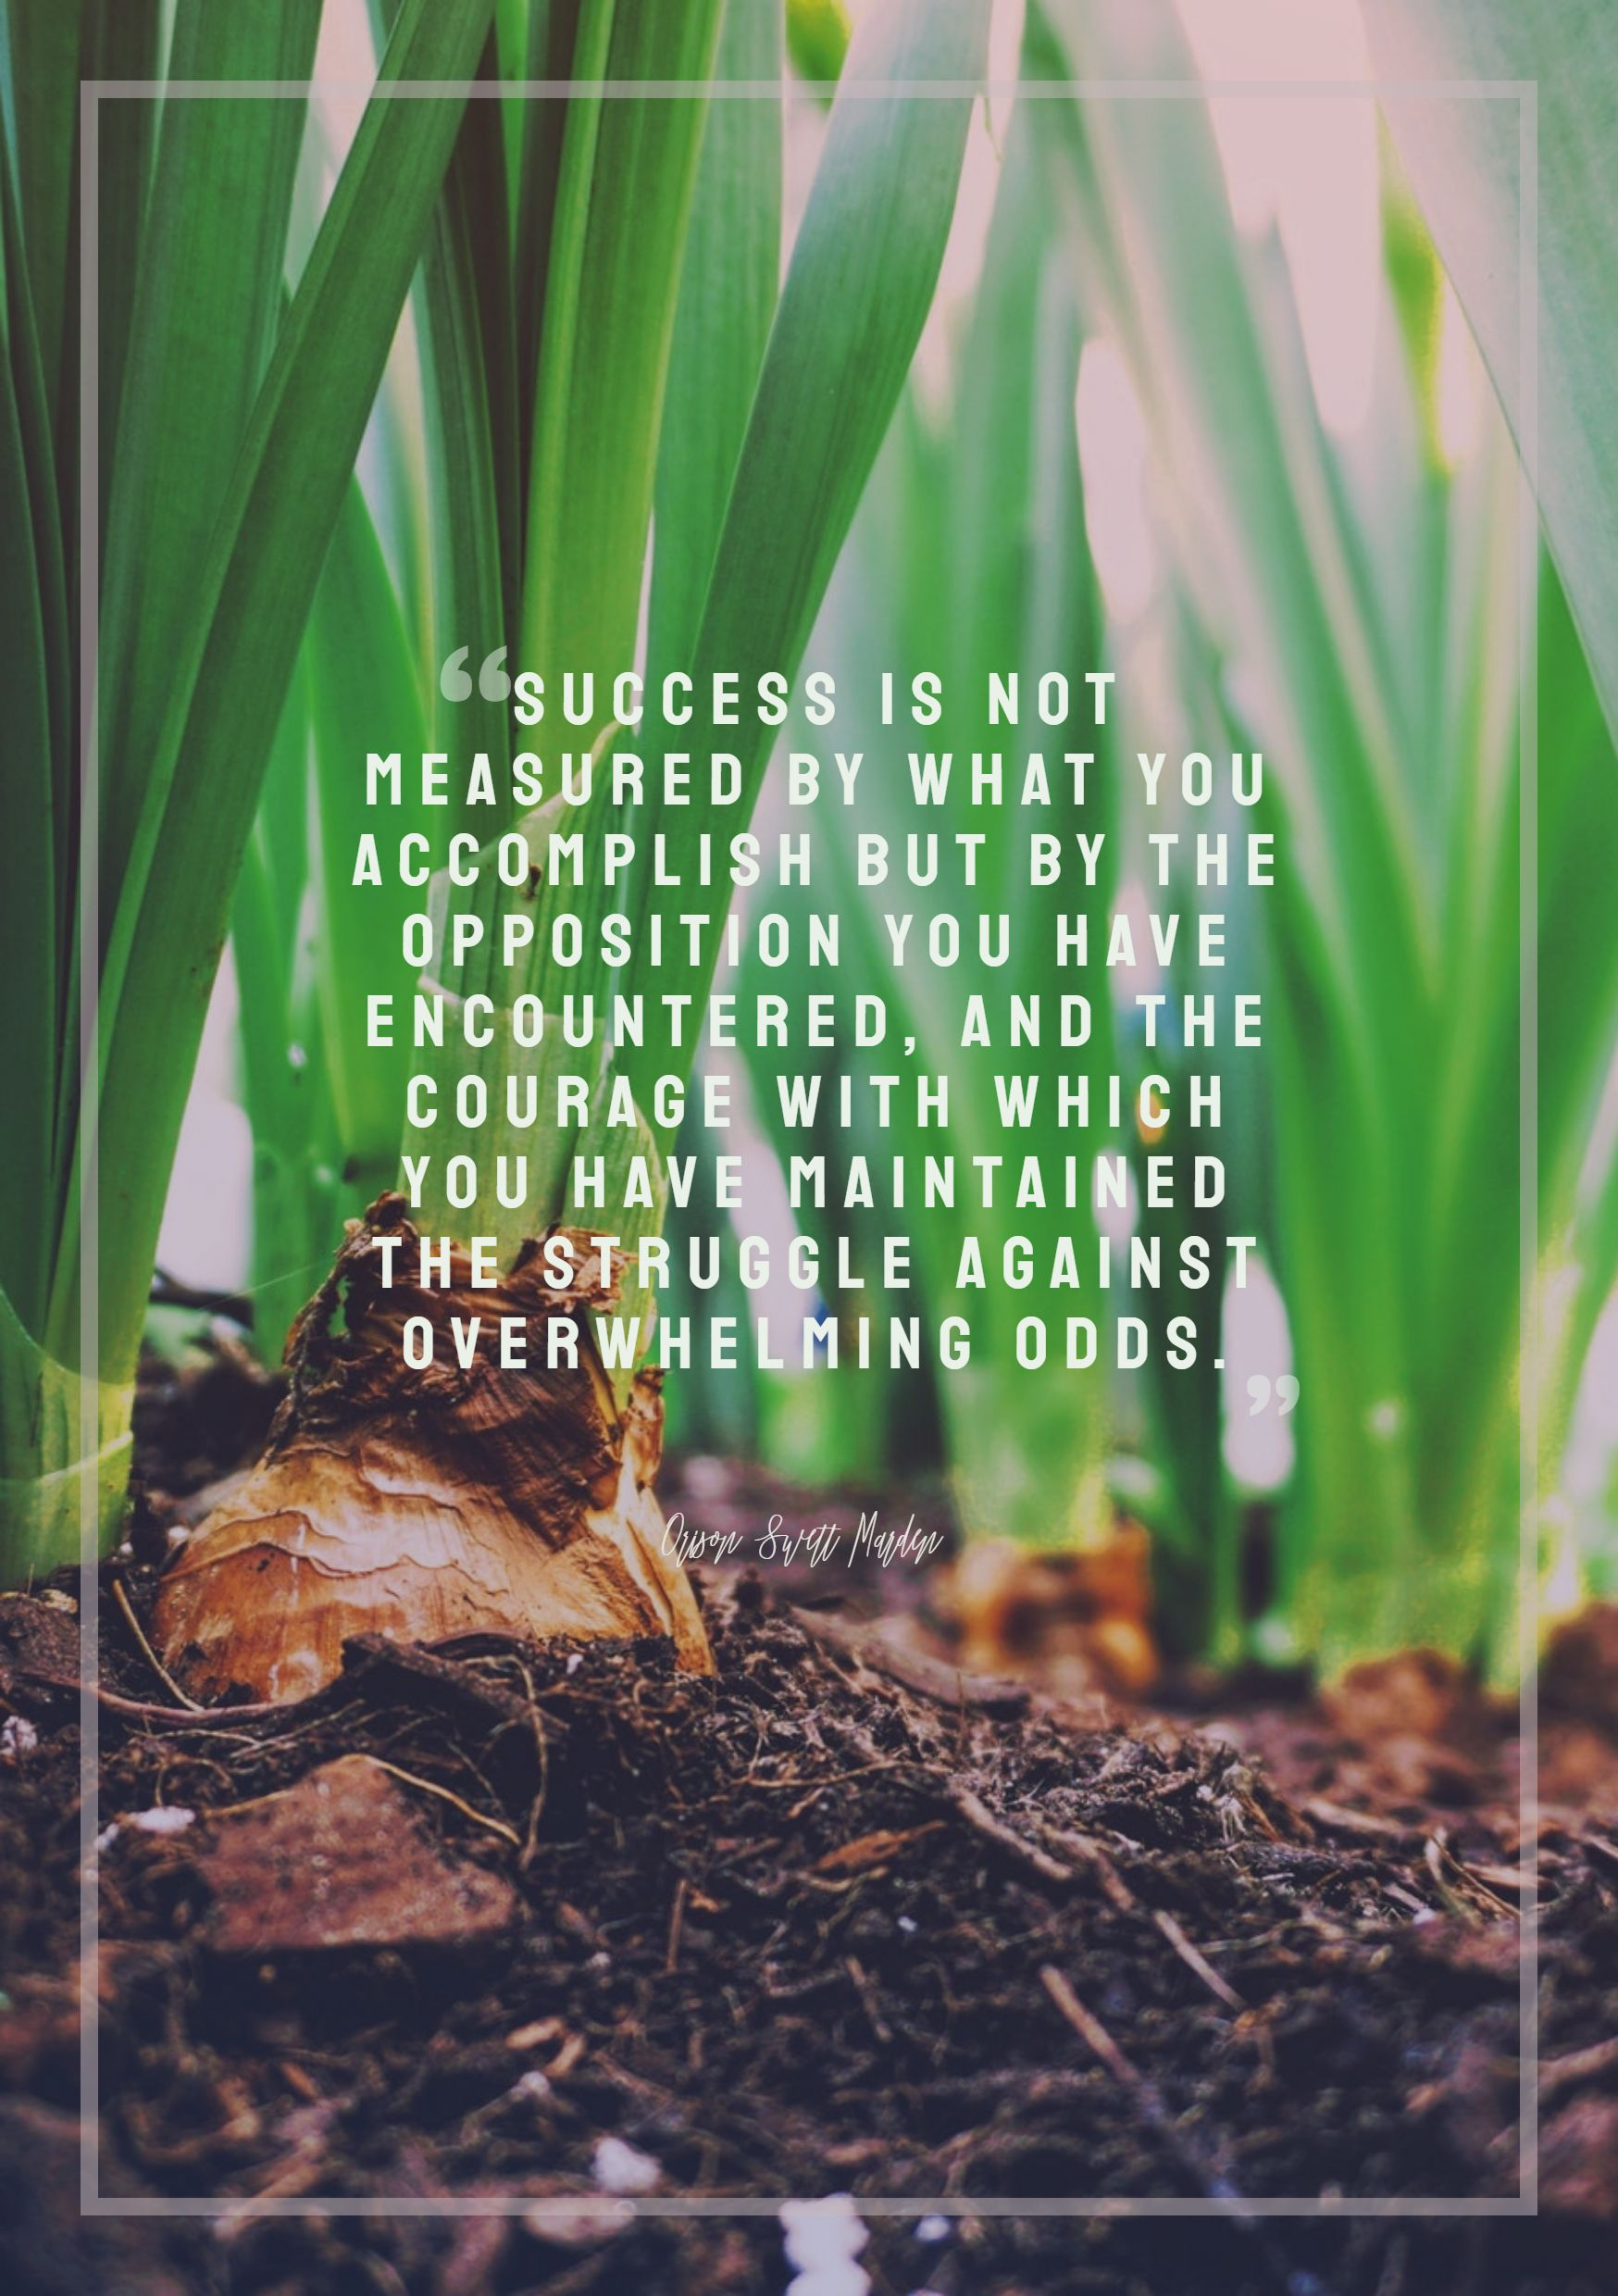 Quotes image of Success is not measured by what you accomplish but by the opposition you have encountered, and the courage with which you have maintained the struggle against overwhelming odds.